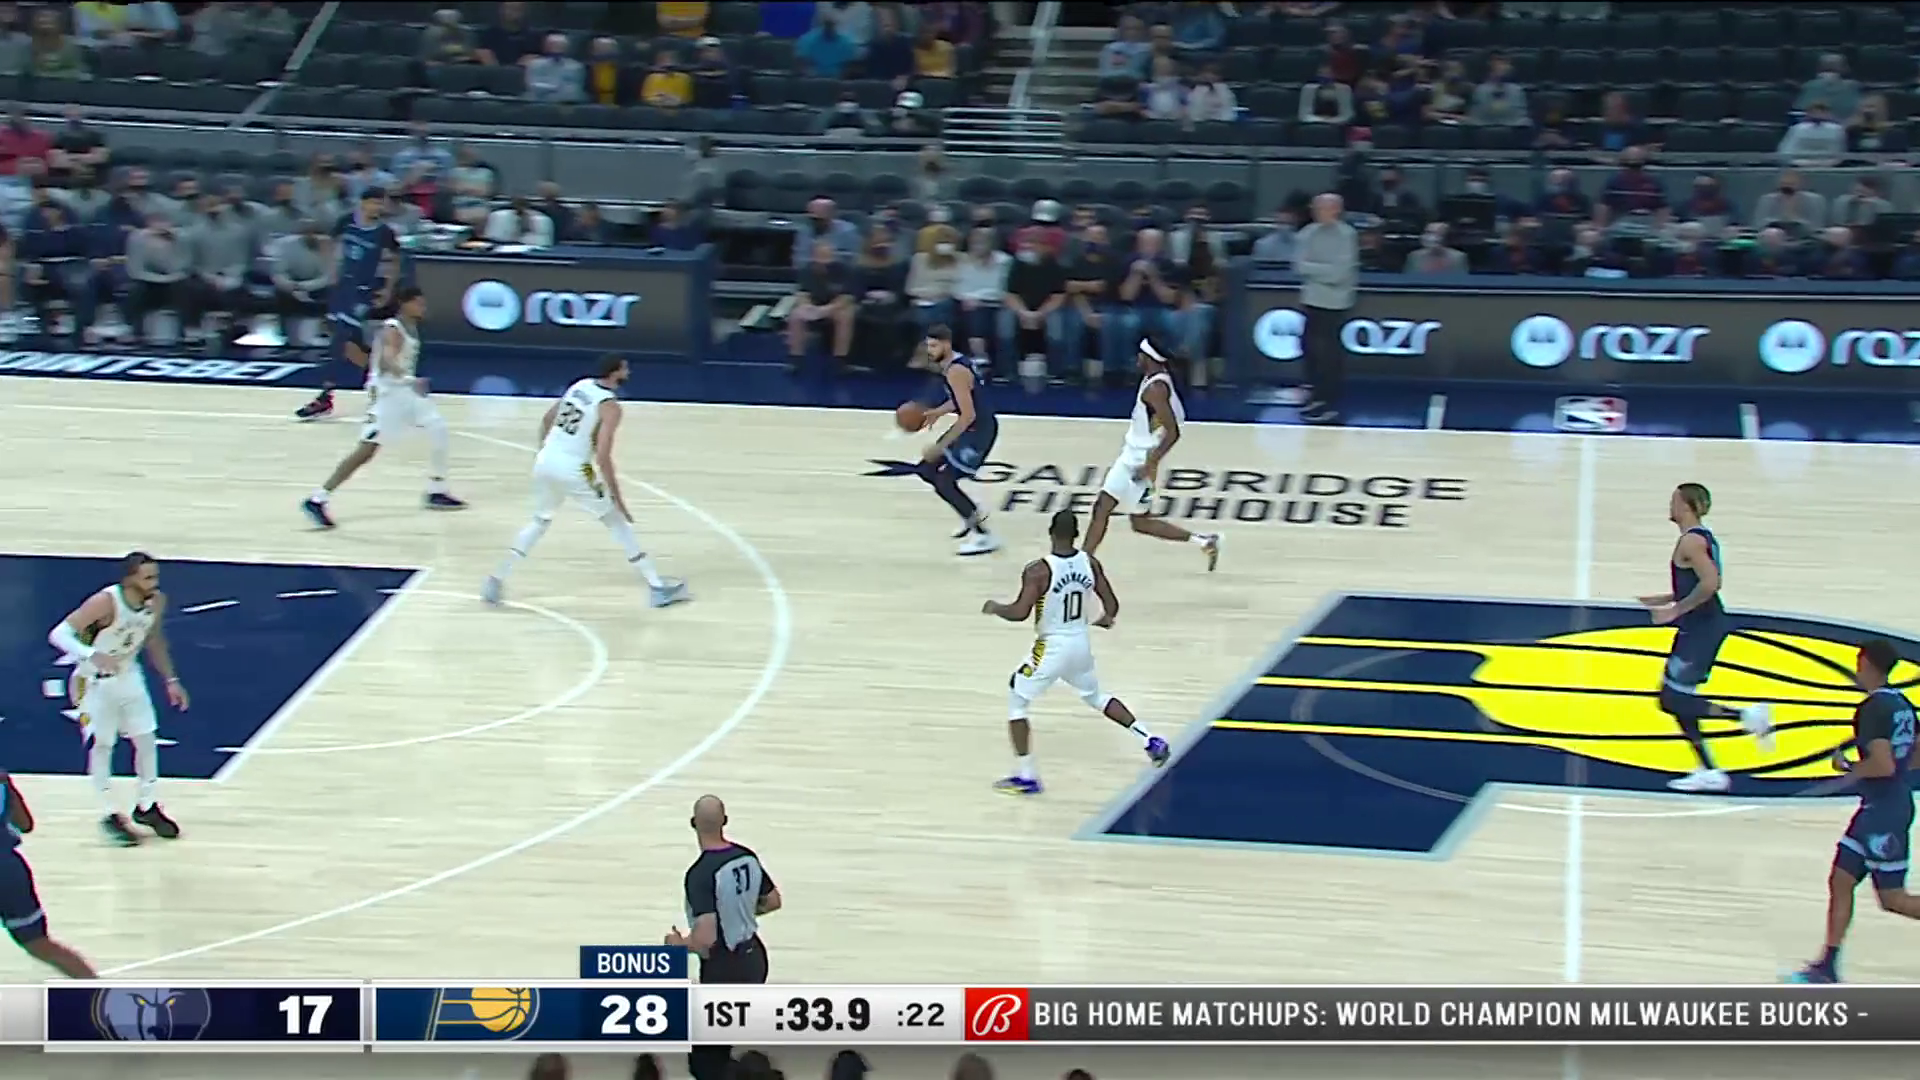 Ziaire Williams with the Slam!